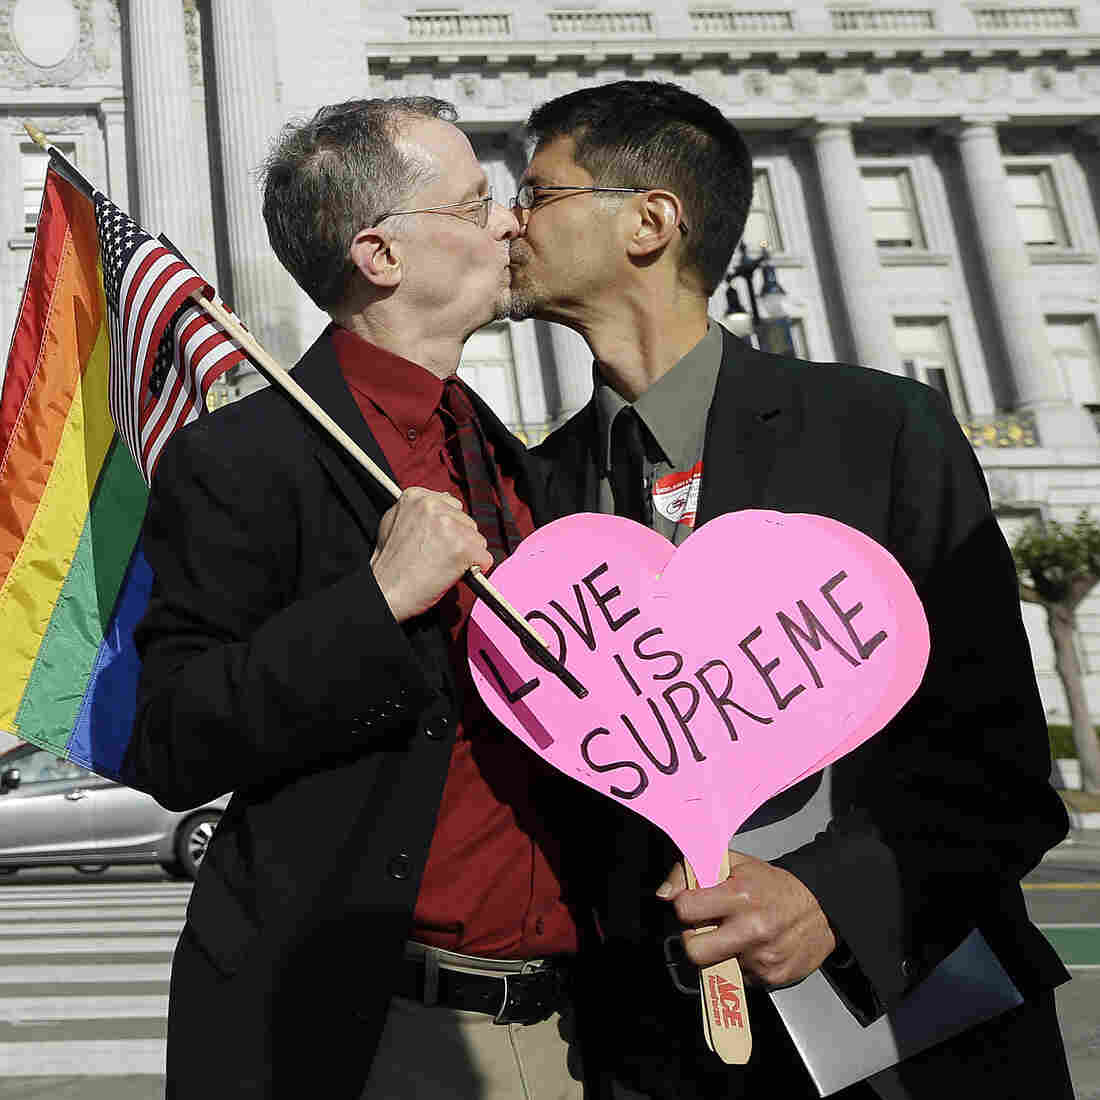 Supreme Court Changes Face Of Marriage In Historic Ruling